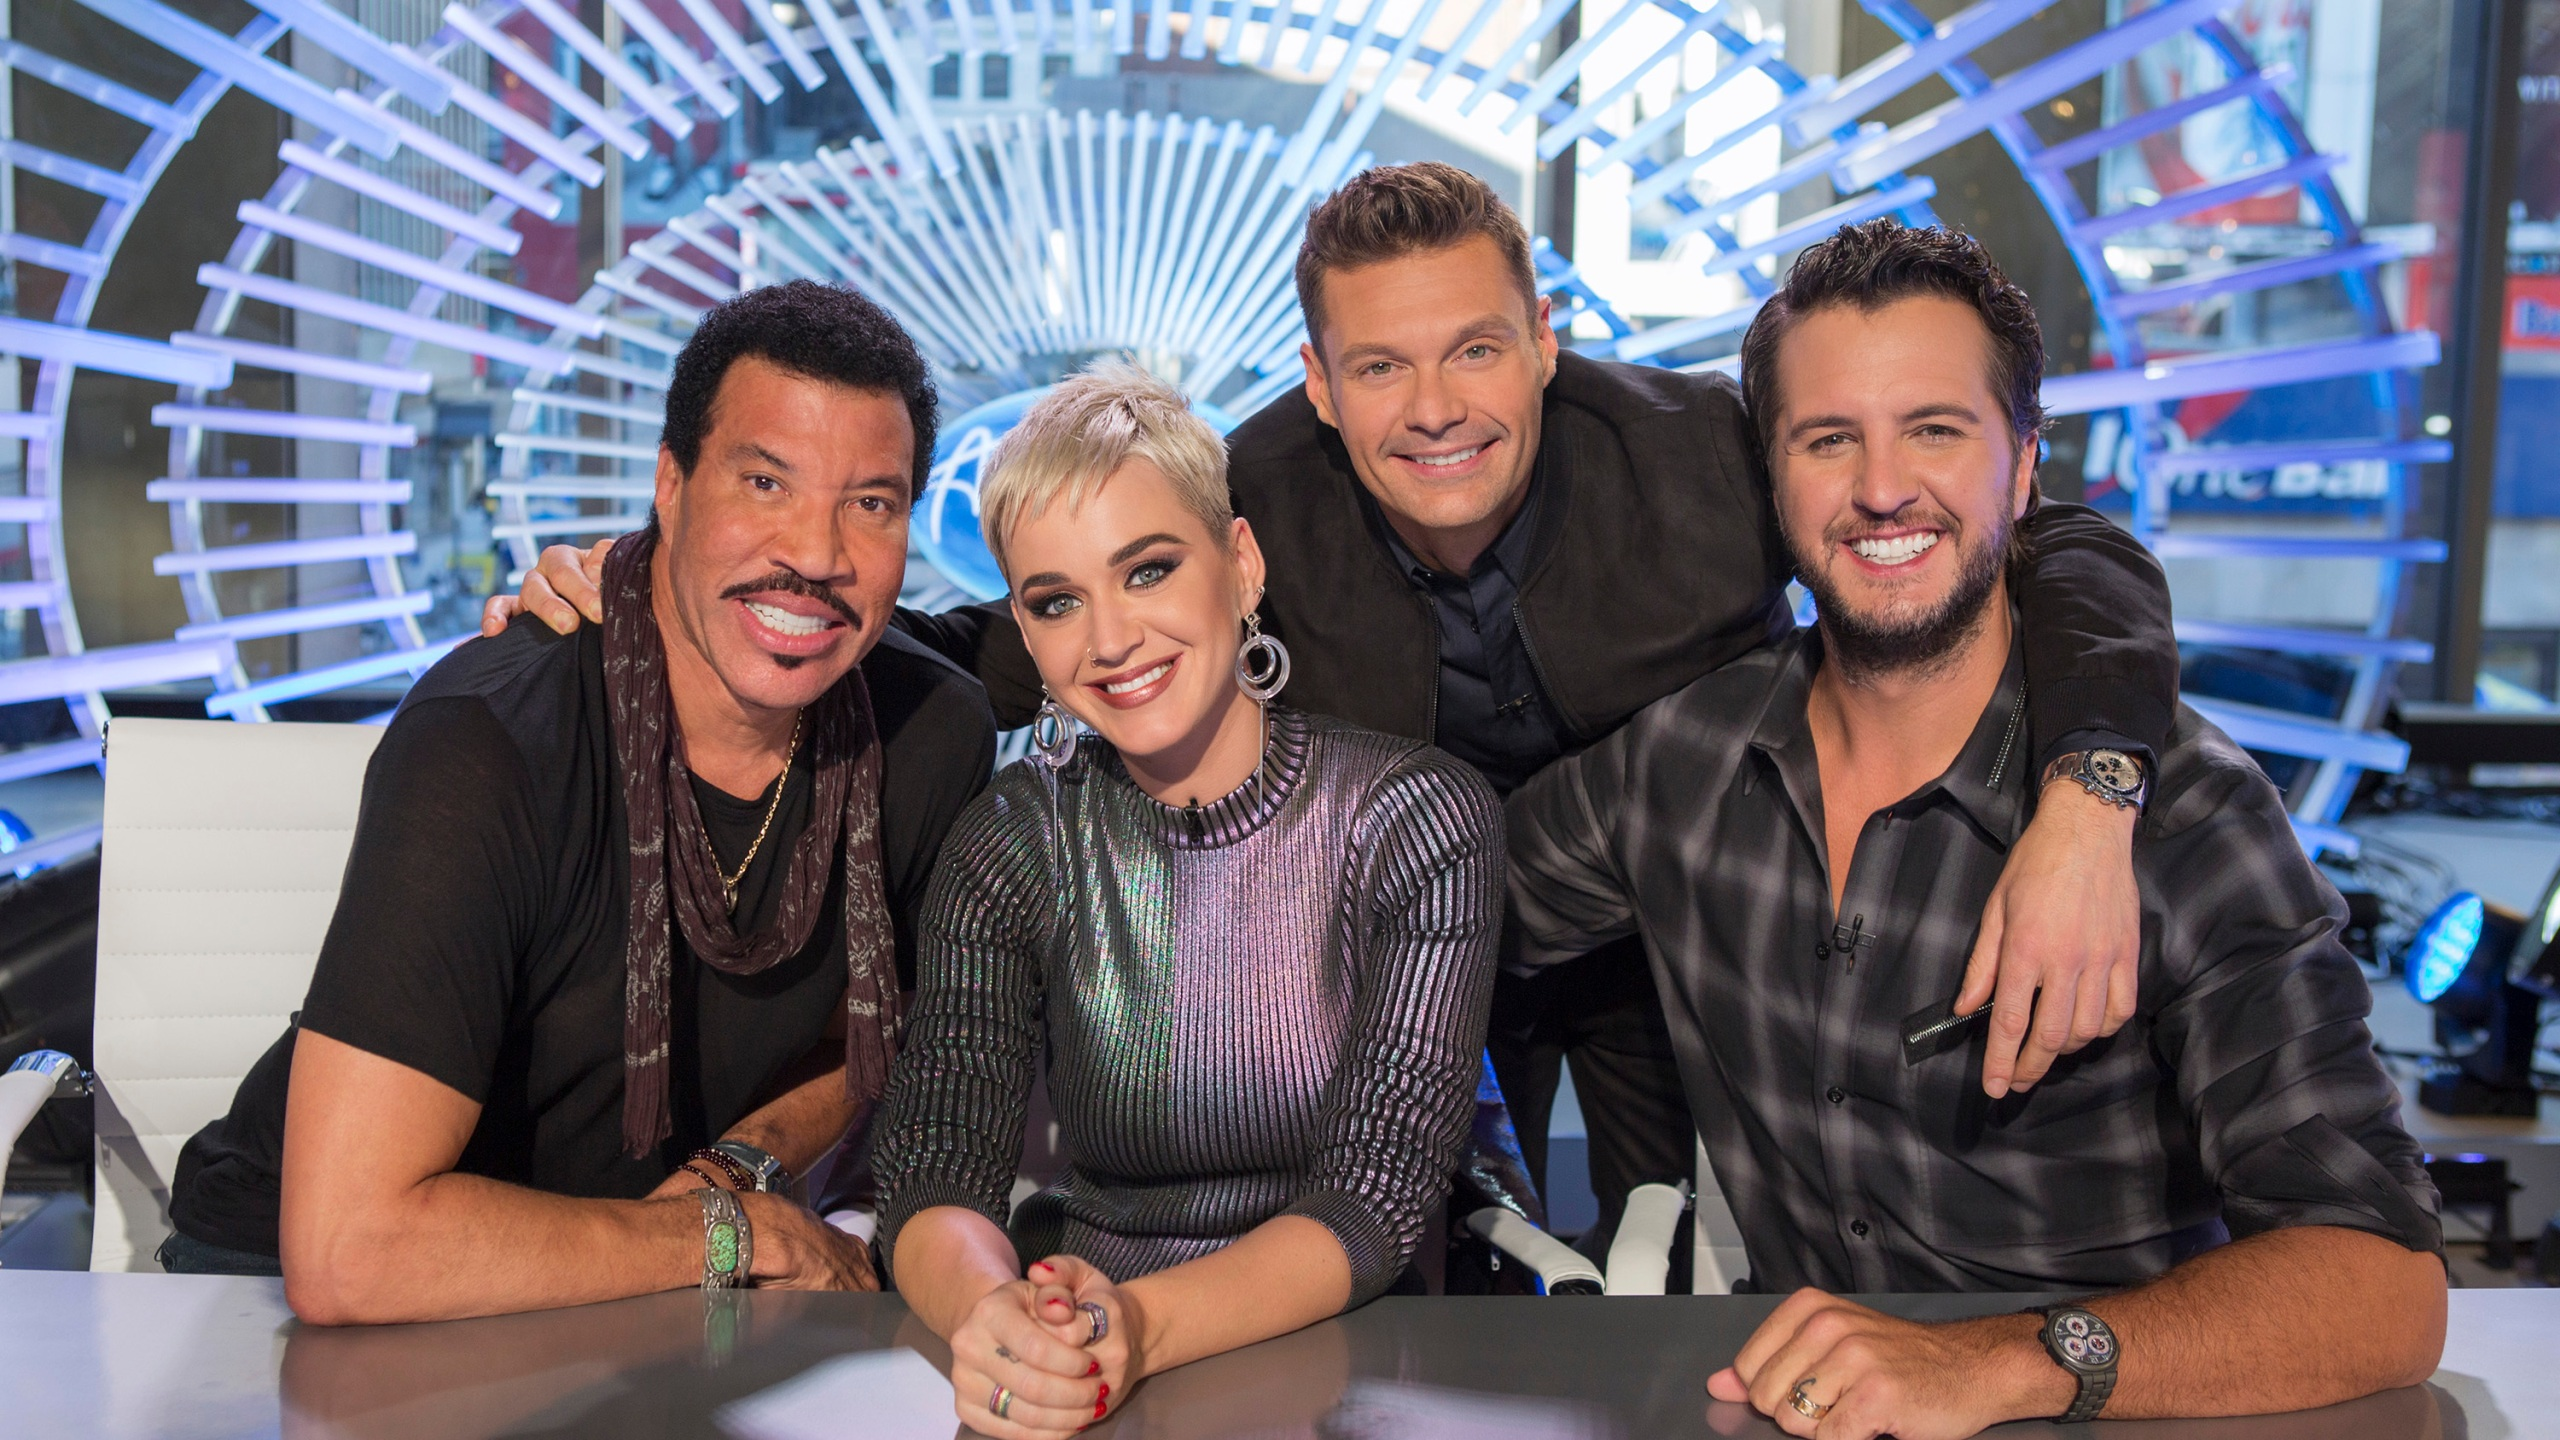 TV_ABC_American_Idol_81407-159532.jpg59257469